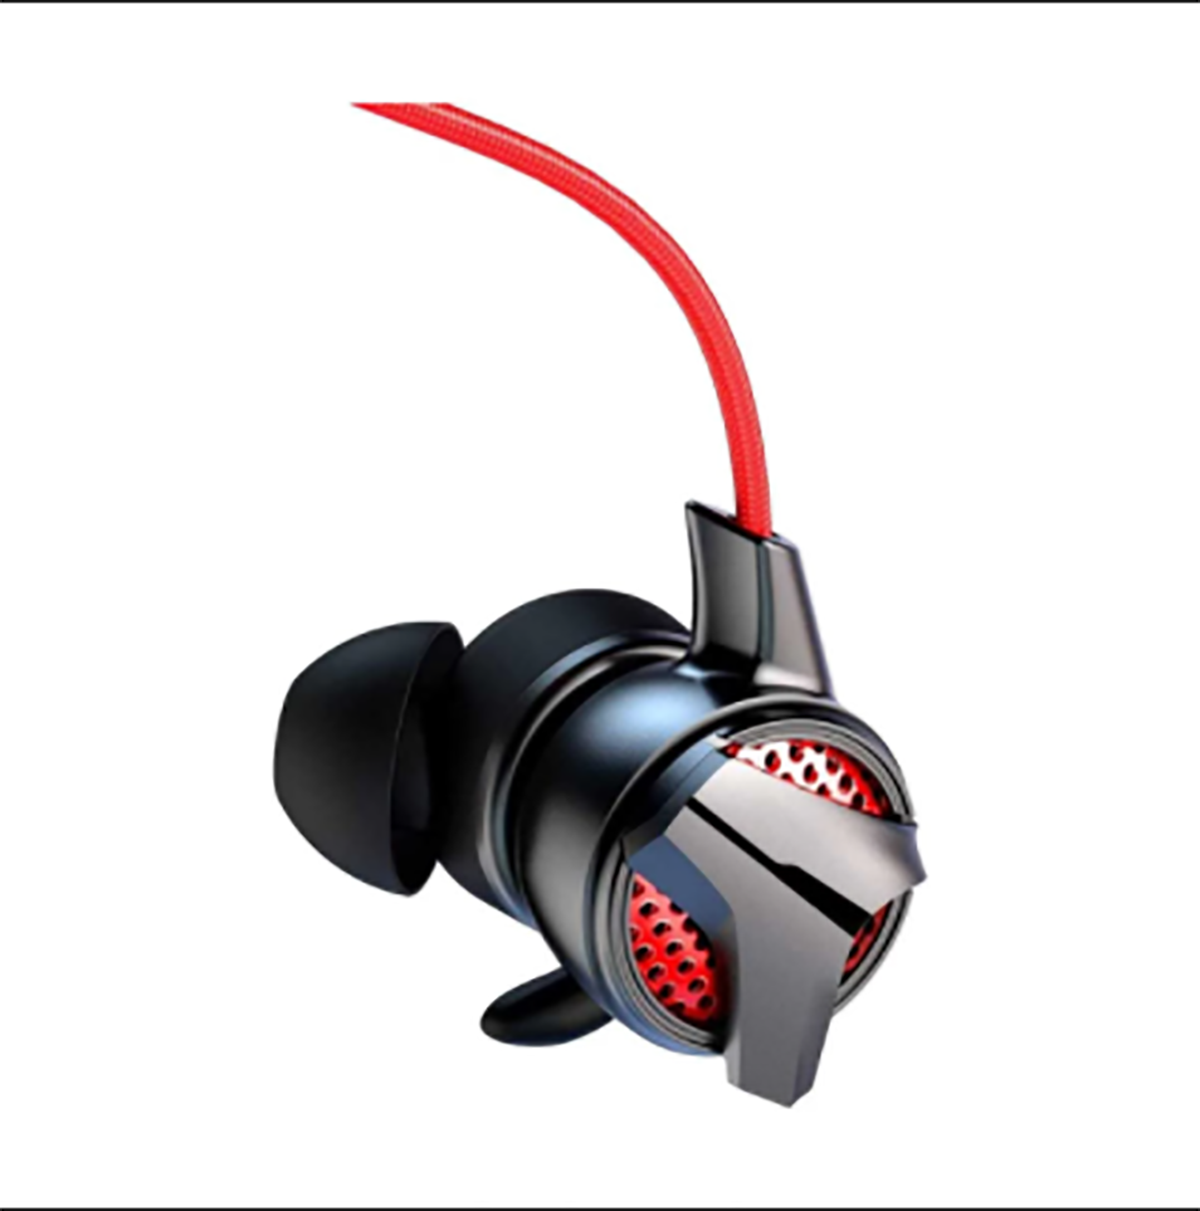 """Brand - Baseus, Model - Baseus GAMO H15, Type - In-Ear Earphone, Connectivity - Wired, Frequency Response - 20Hz - 20KHz, Microphone - Yes, Body Materials - ABS+TPE, Plug Type - 3.5mm Jack, Cord/Cable Length - 1.2 Meter, Color - Red-Black, Feature - 1 meter plug-in microphone, One button double microphone design, Hi-Fi music, listen for position Gallop the battlefield, Sliding wire-controlled volume, Suitable for 3.5mm audio interface devices, Elbow socket design, fit the finger arc to upgrade the game experience, Packet Contents - 1 x BASEUS GAMO H15 3.5mm Wired Earphone, 1 x Microphone, 2 x Ear Buds, Part No - NGH15-91, Warranty - 1 Year, Country of Origin - China, Made in/ Assemble - China """"Keyword"""" """"baseus gamo h15 price in bangladesh"""" """"baseus gamo h15 review"""" """"baseus gamo h15 vs plextone g30"""" """"baseus gamo c15"""" """"baseus gamo c18"""" """"baseus gamo h15 aliexpress"""""""